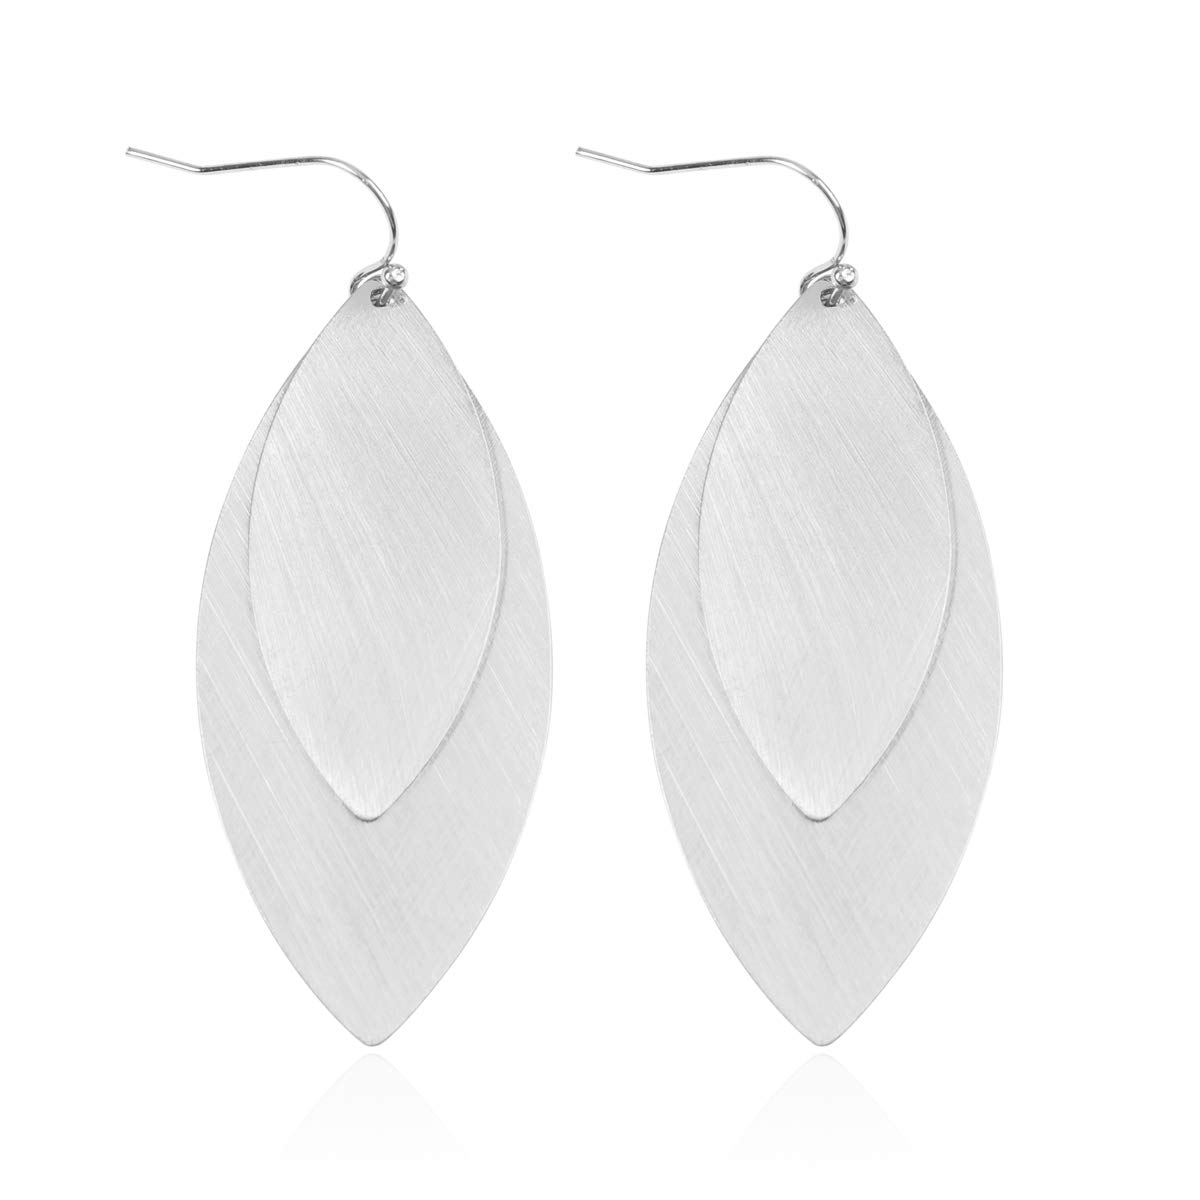 36232fcb6 Amazon.com: RIAH FASHION Classic Geometric Leaf Cutout Open Hoop Earrings -  Simple Metallic Marquise Pointed Oval Statement Hoops/Floating Petal Drop  ...